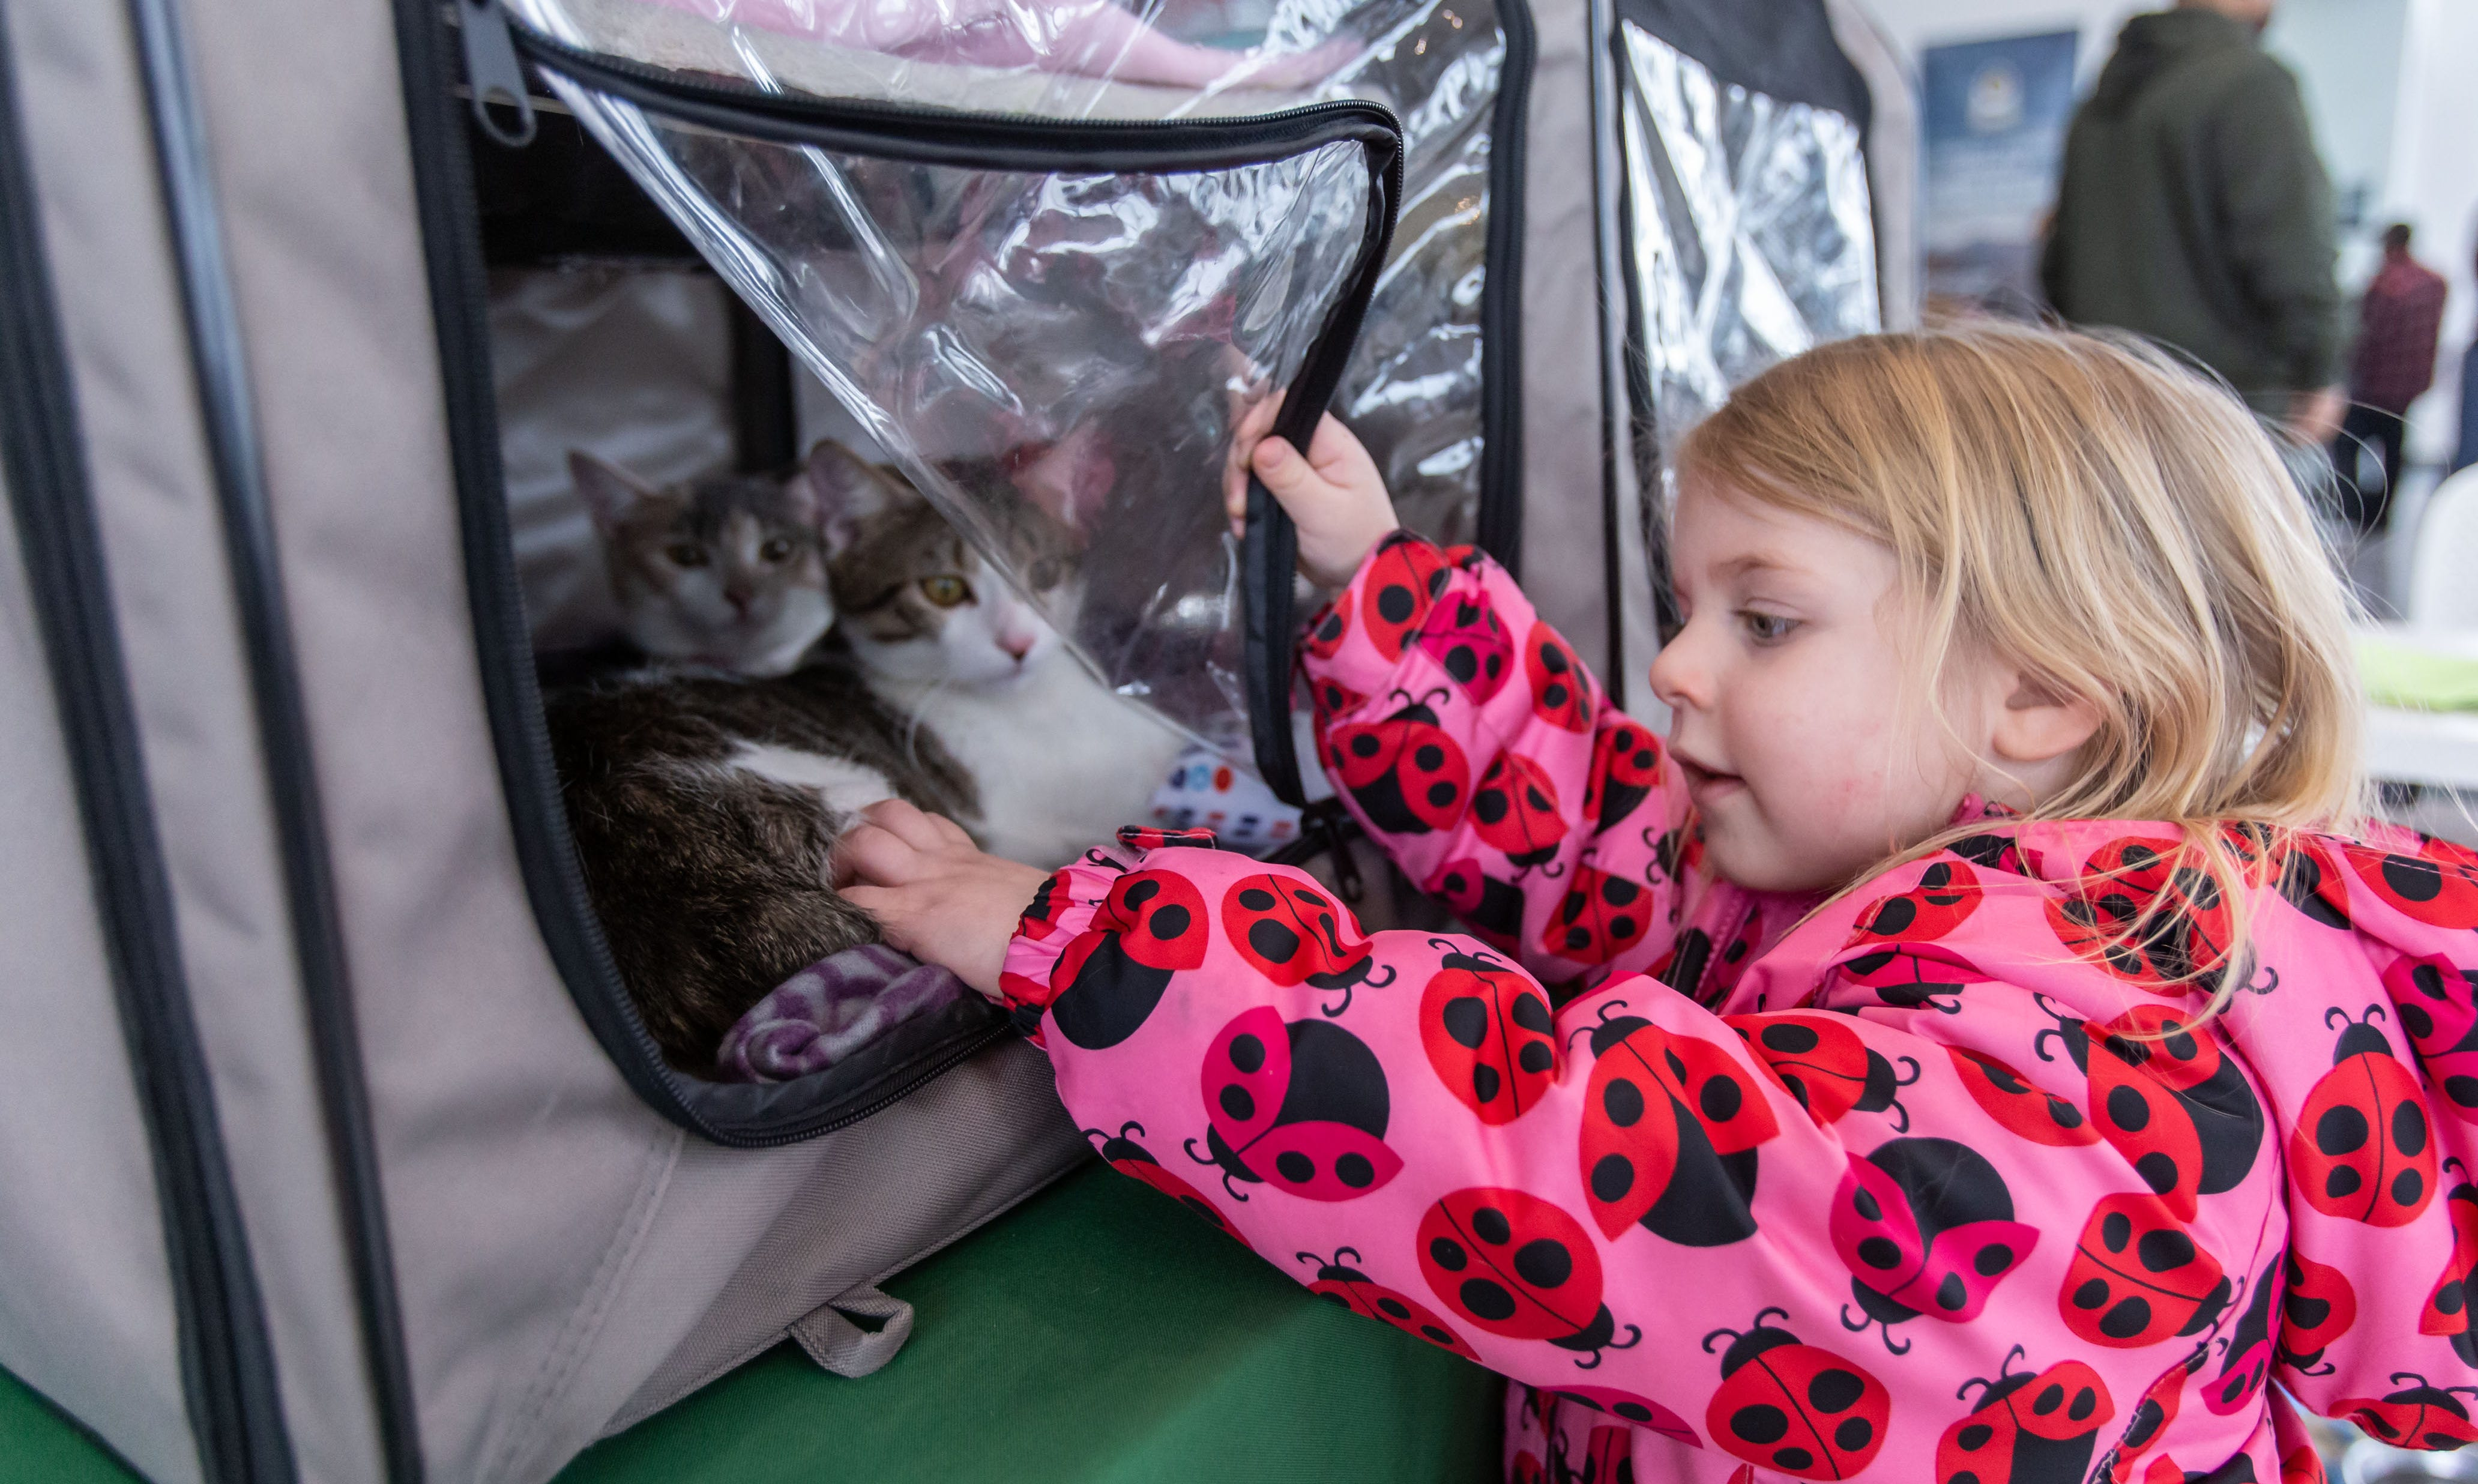 Three-year-old Nora Masters of Brookfield pets a cat from HAWS during the Adopt a Pet program at Russ Darrow Kia of Wauwatosa on Saturday, March 9, 2019. The event, held in partnership with the Humane Animal Welfare Society (HAWS) in Waukesha and the German Shepard Dogs Club of Wisconsin (GSDCW), offered attendees the opportunity to meet and adopt dogs, cats, rabbits, and other types of animals.